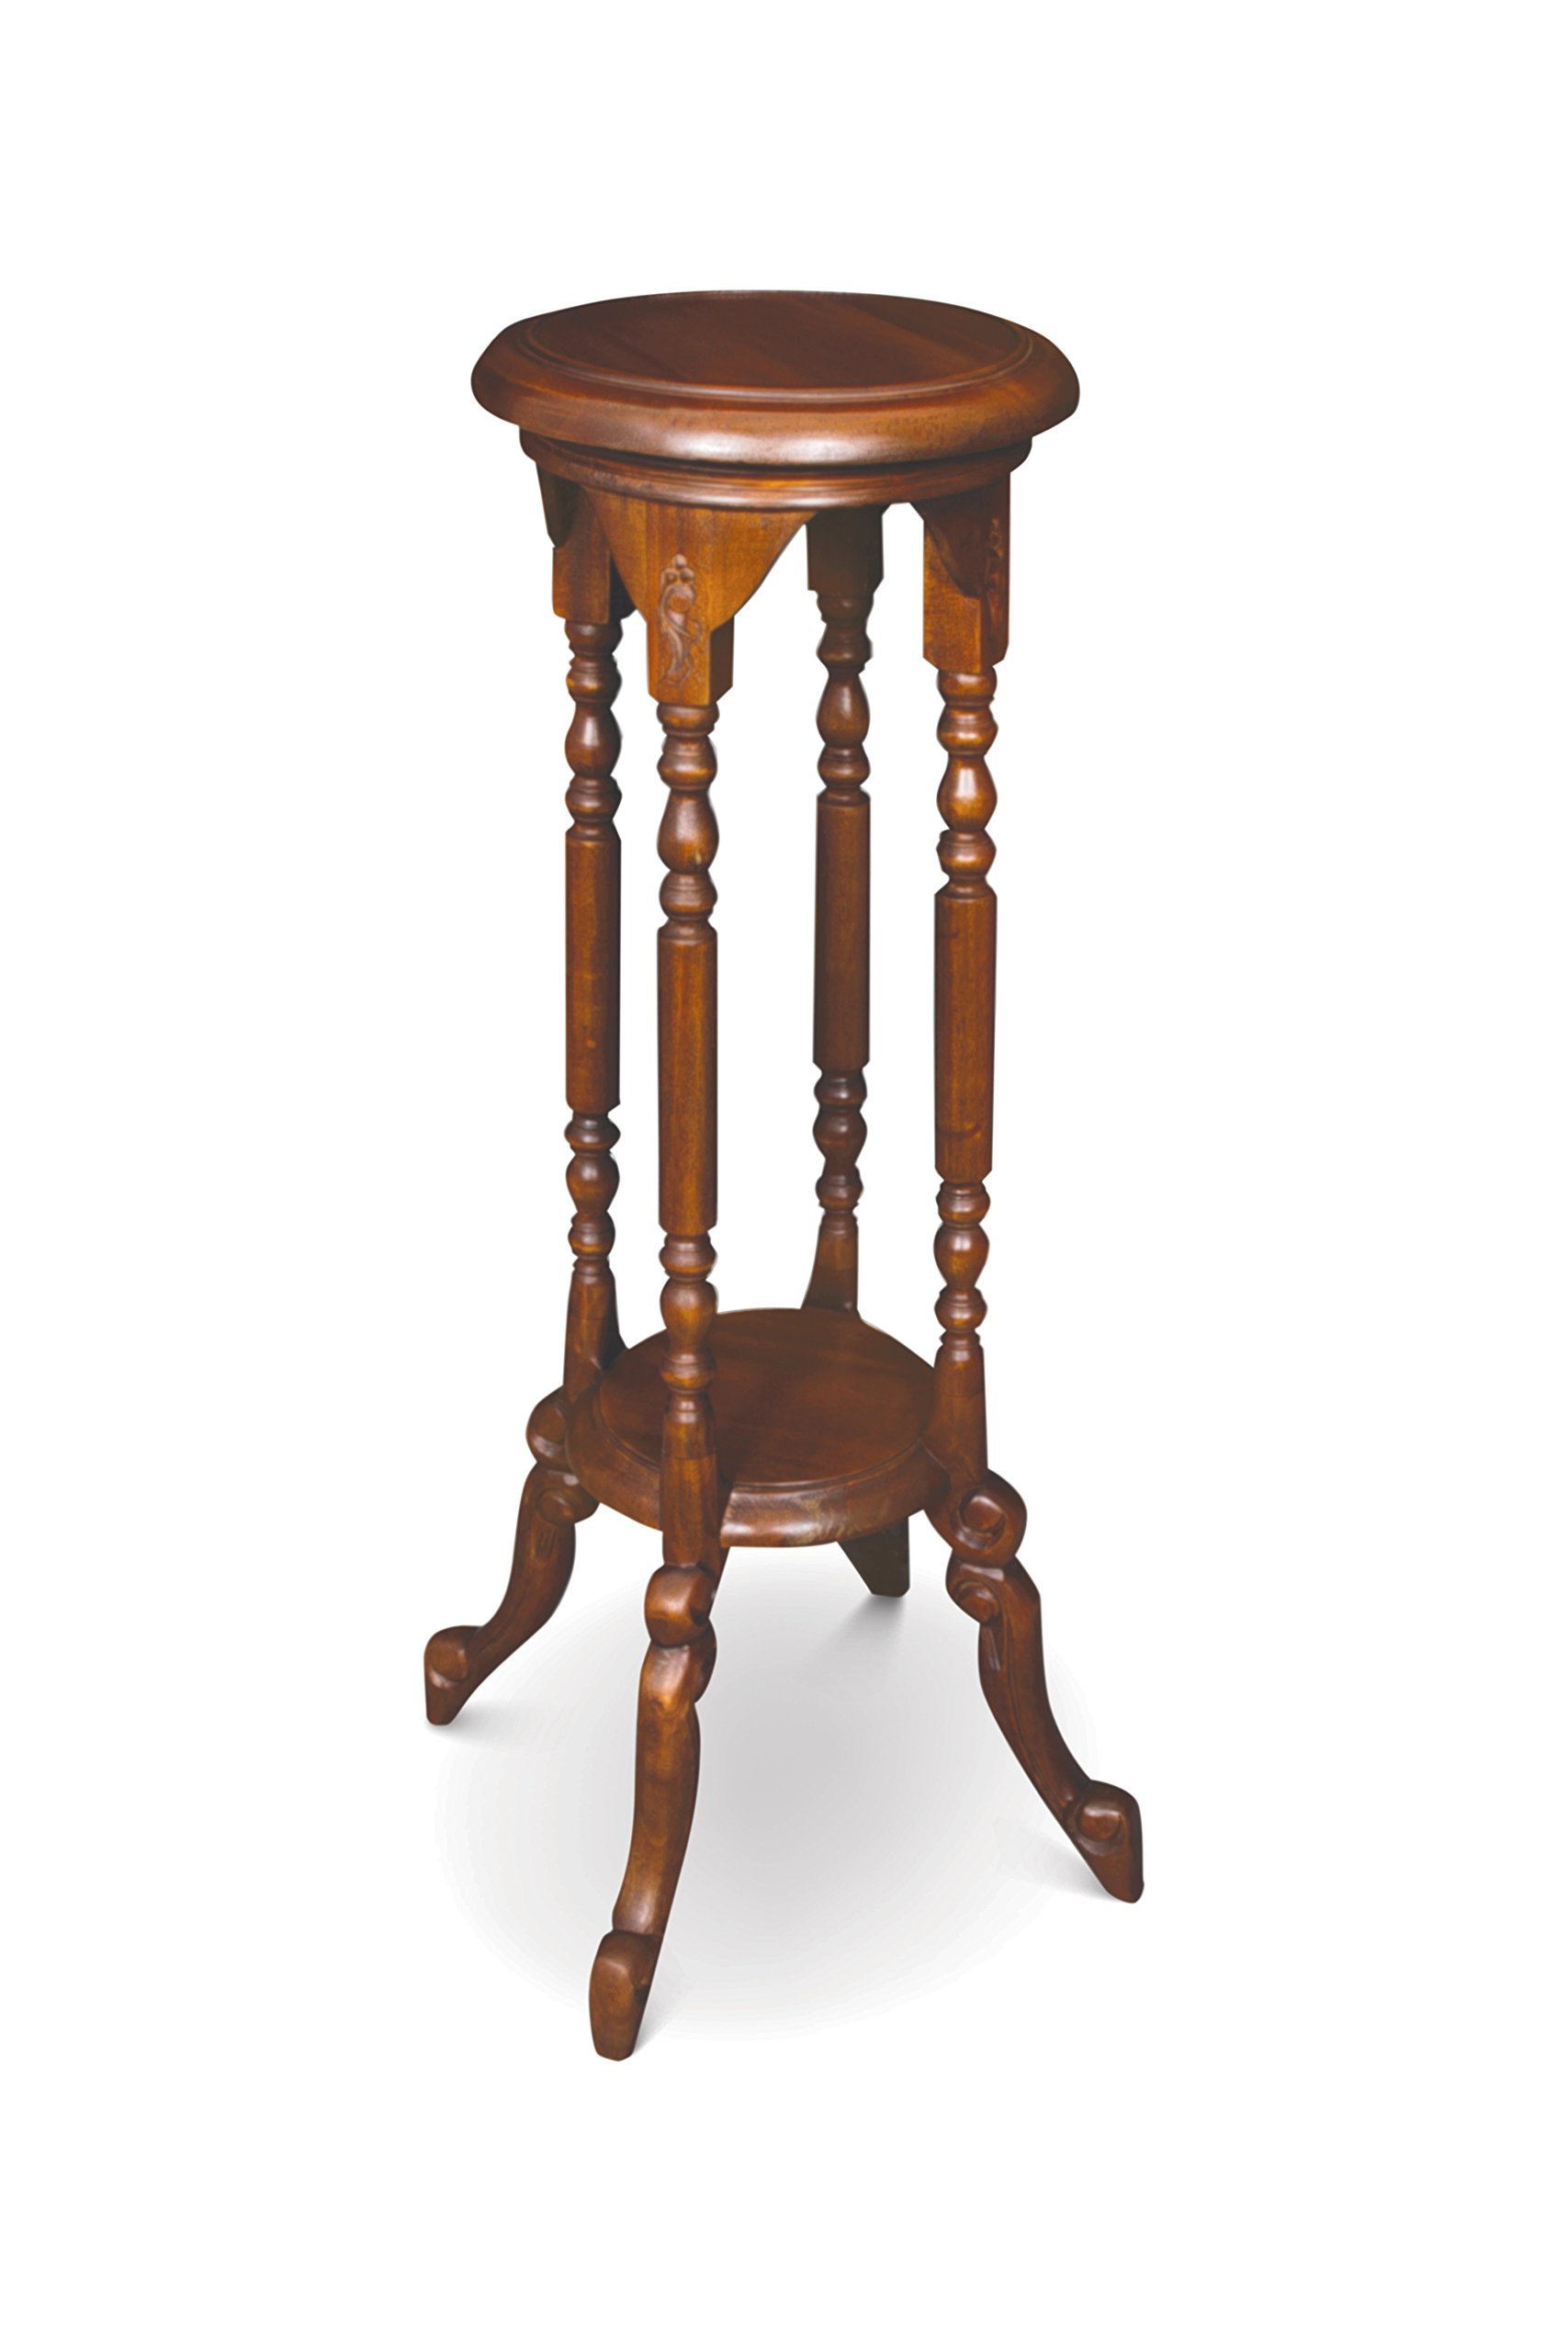 NES Furniture nes10046 31'' Fine Handcrafted Furniture Solid Mahogany Wood Felicity Plant Stand, Pine